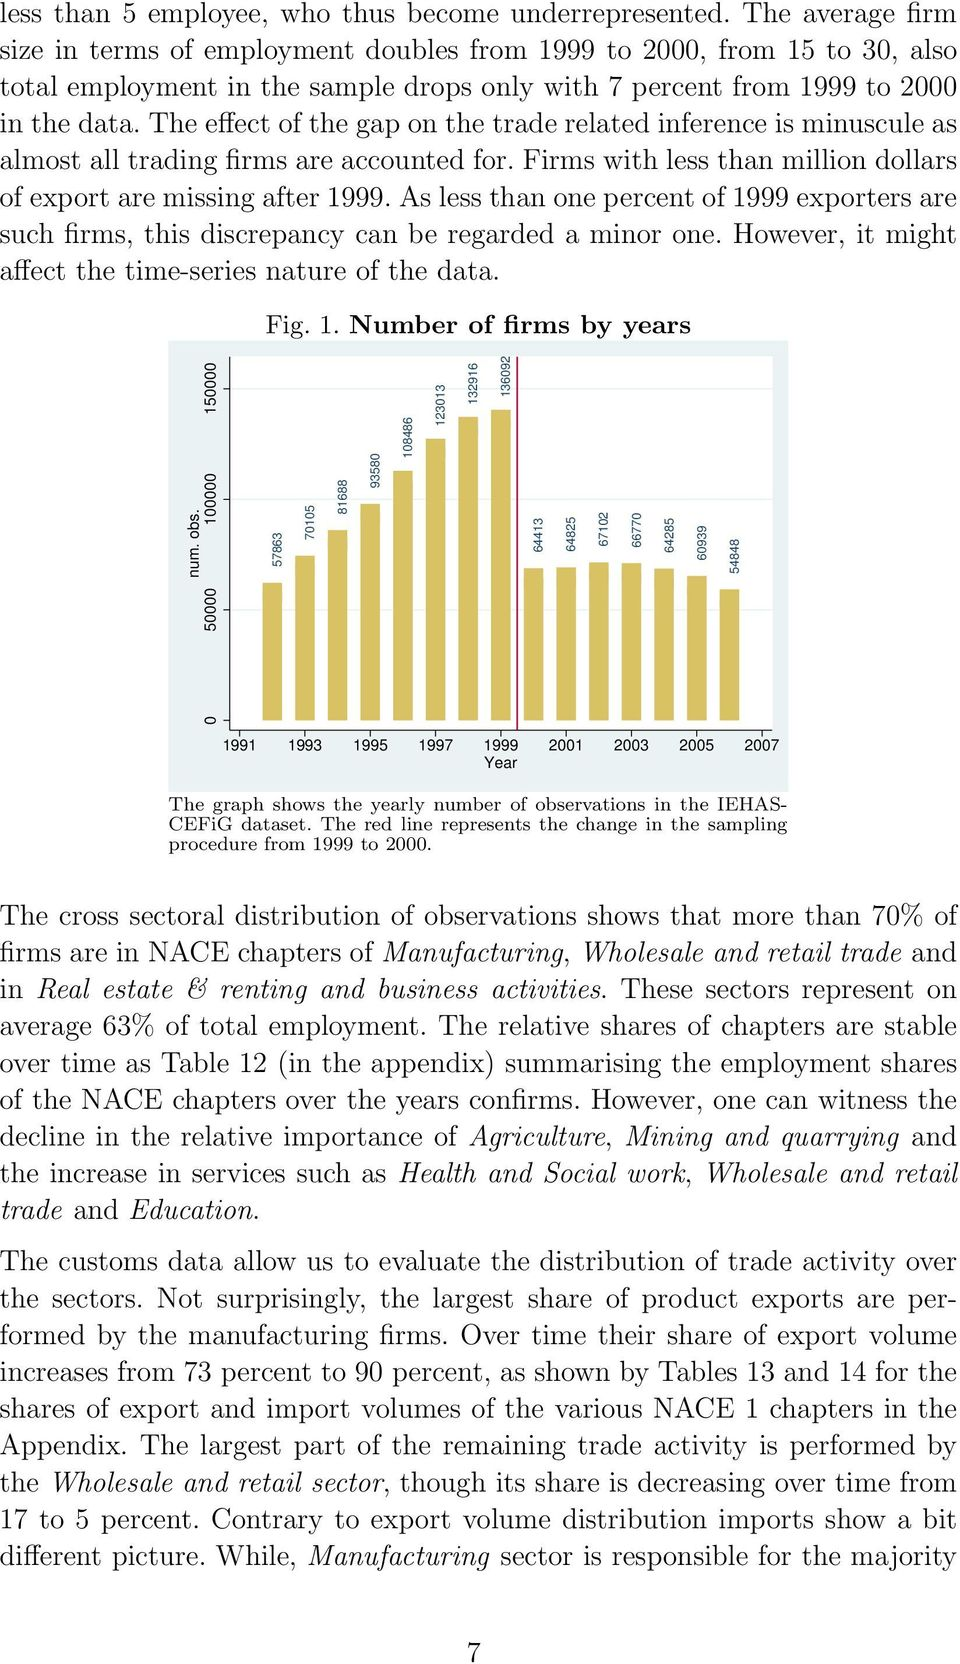 The effect of the gap on the trade related inference is minuscule as almost all trading firms are accounted for. Firms with less than million dollars of export are missing after 1999.